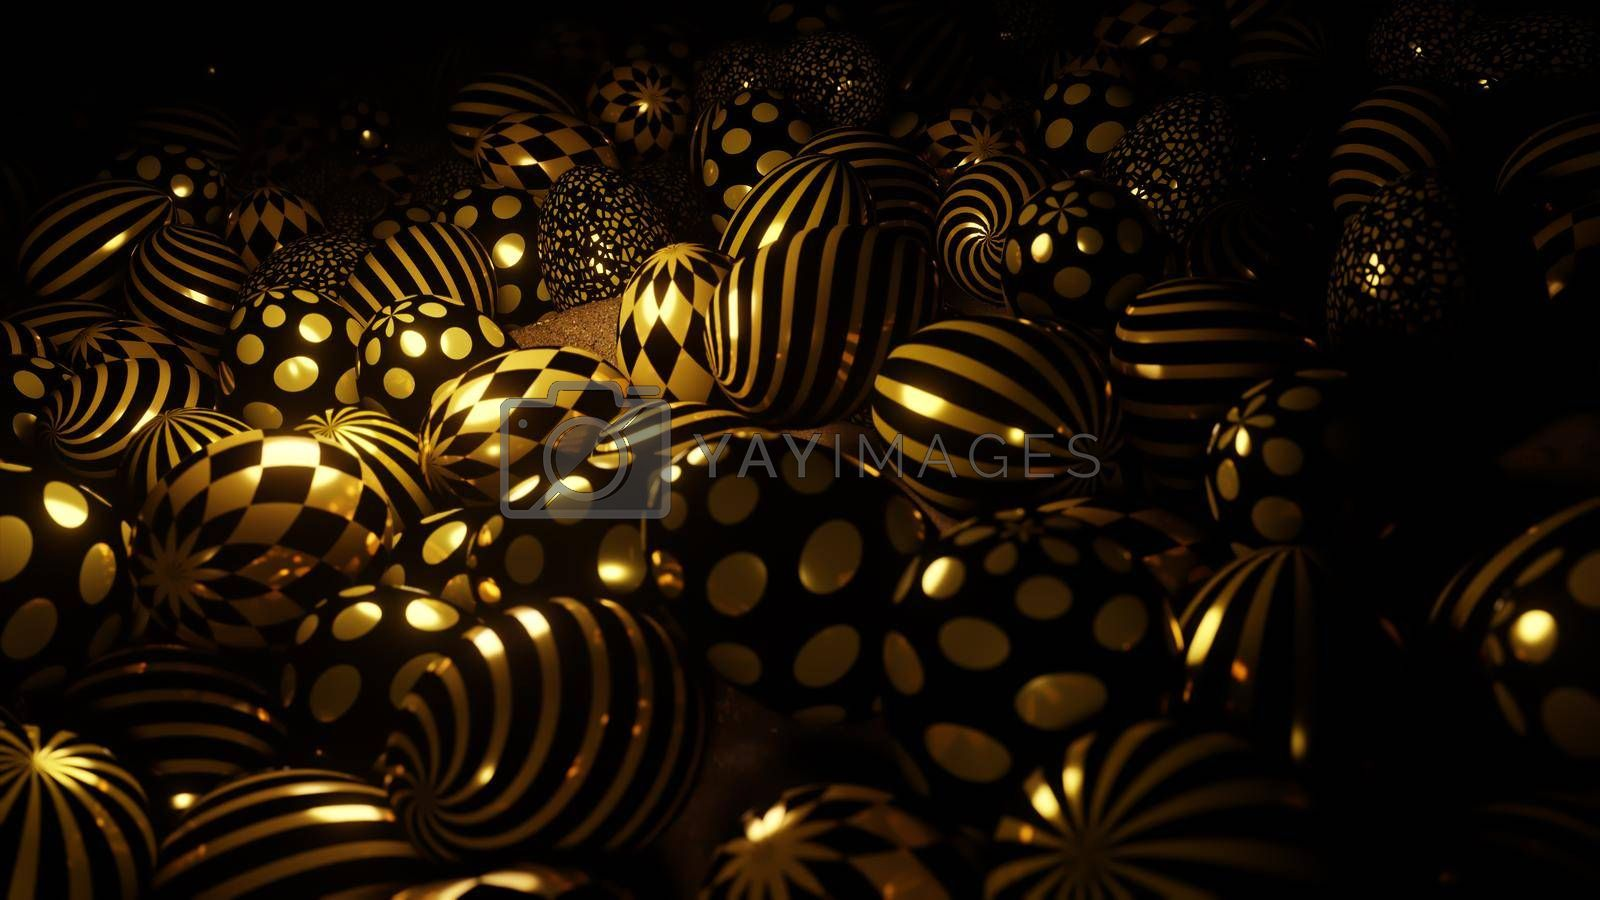 3D illustration Background for advertising and wallpaper in festival  and celebrate scene. 3D rendering in decorative concept.